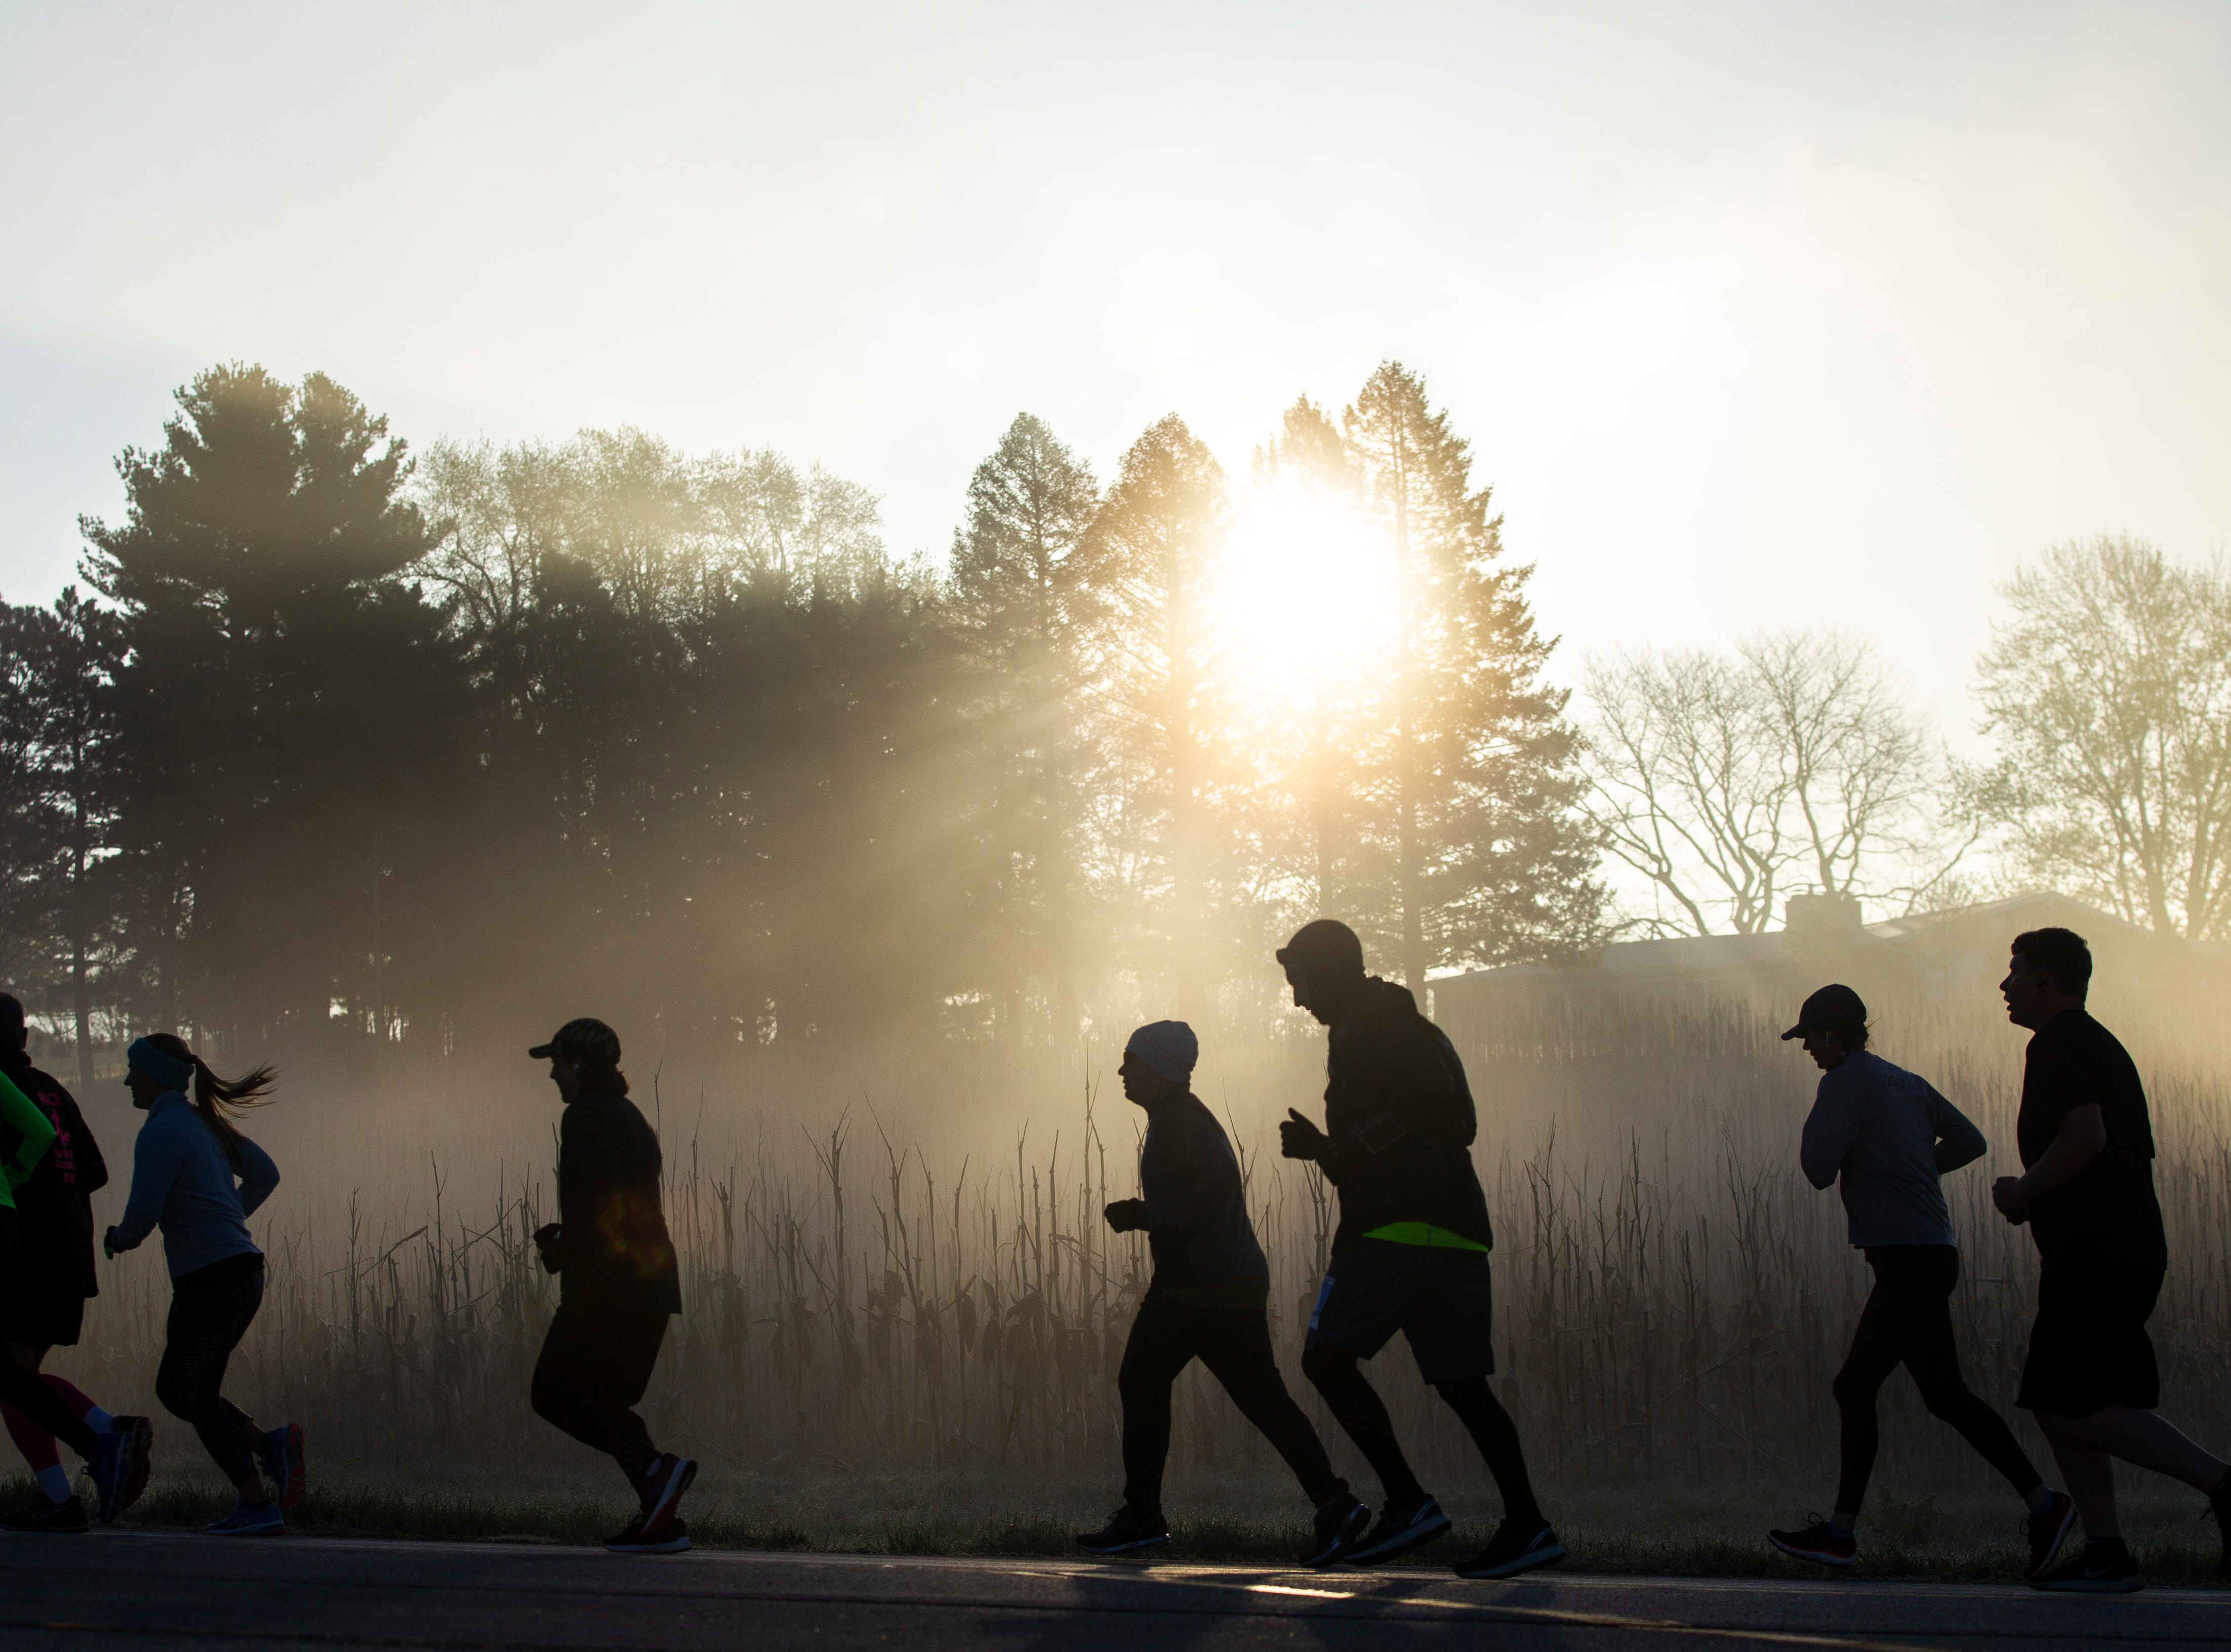 Runners ascend a hill as sun shines through a tree in a foggy valley during the second annual Run CRANDIC marathon, Sunday, April 28, 2019, along Dubuque Street in Iowa City, Iowa.